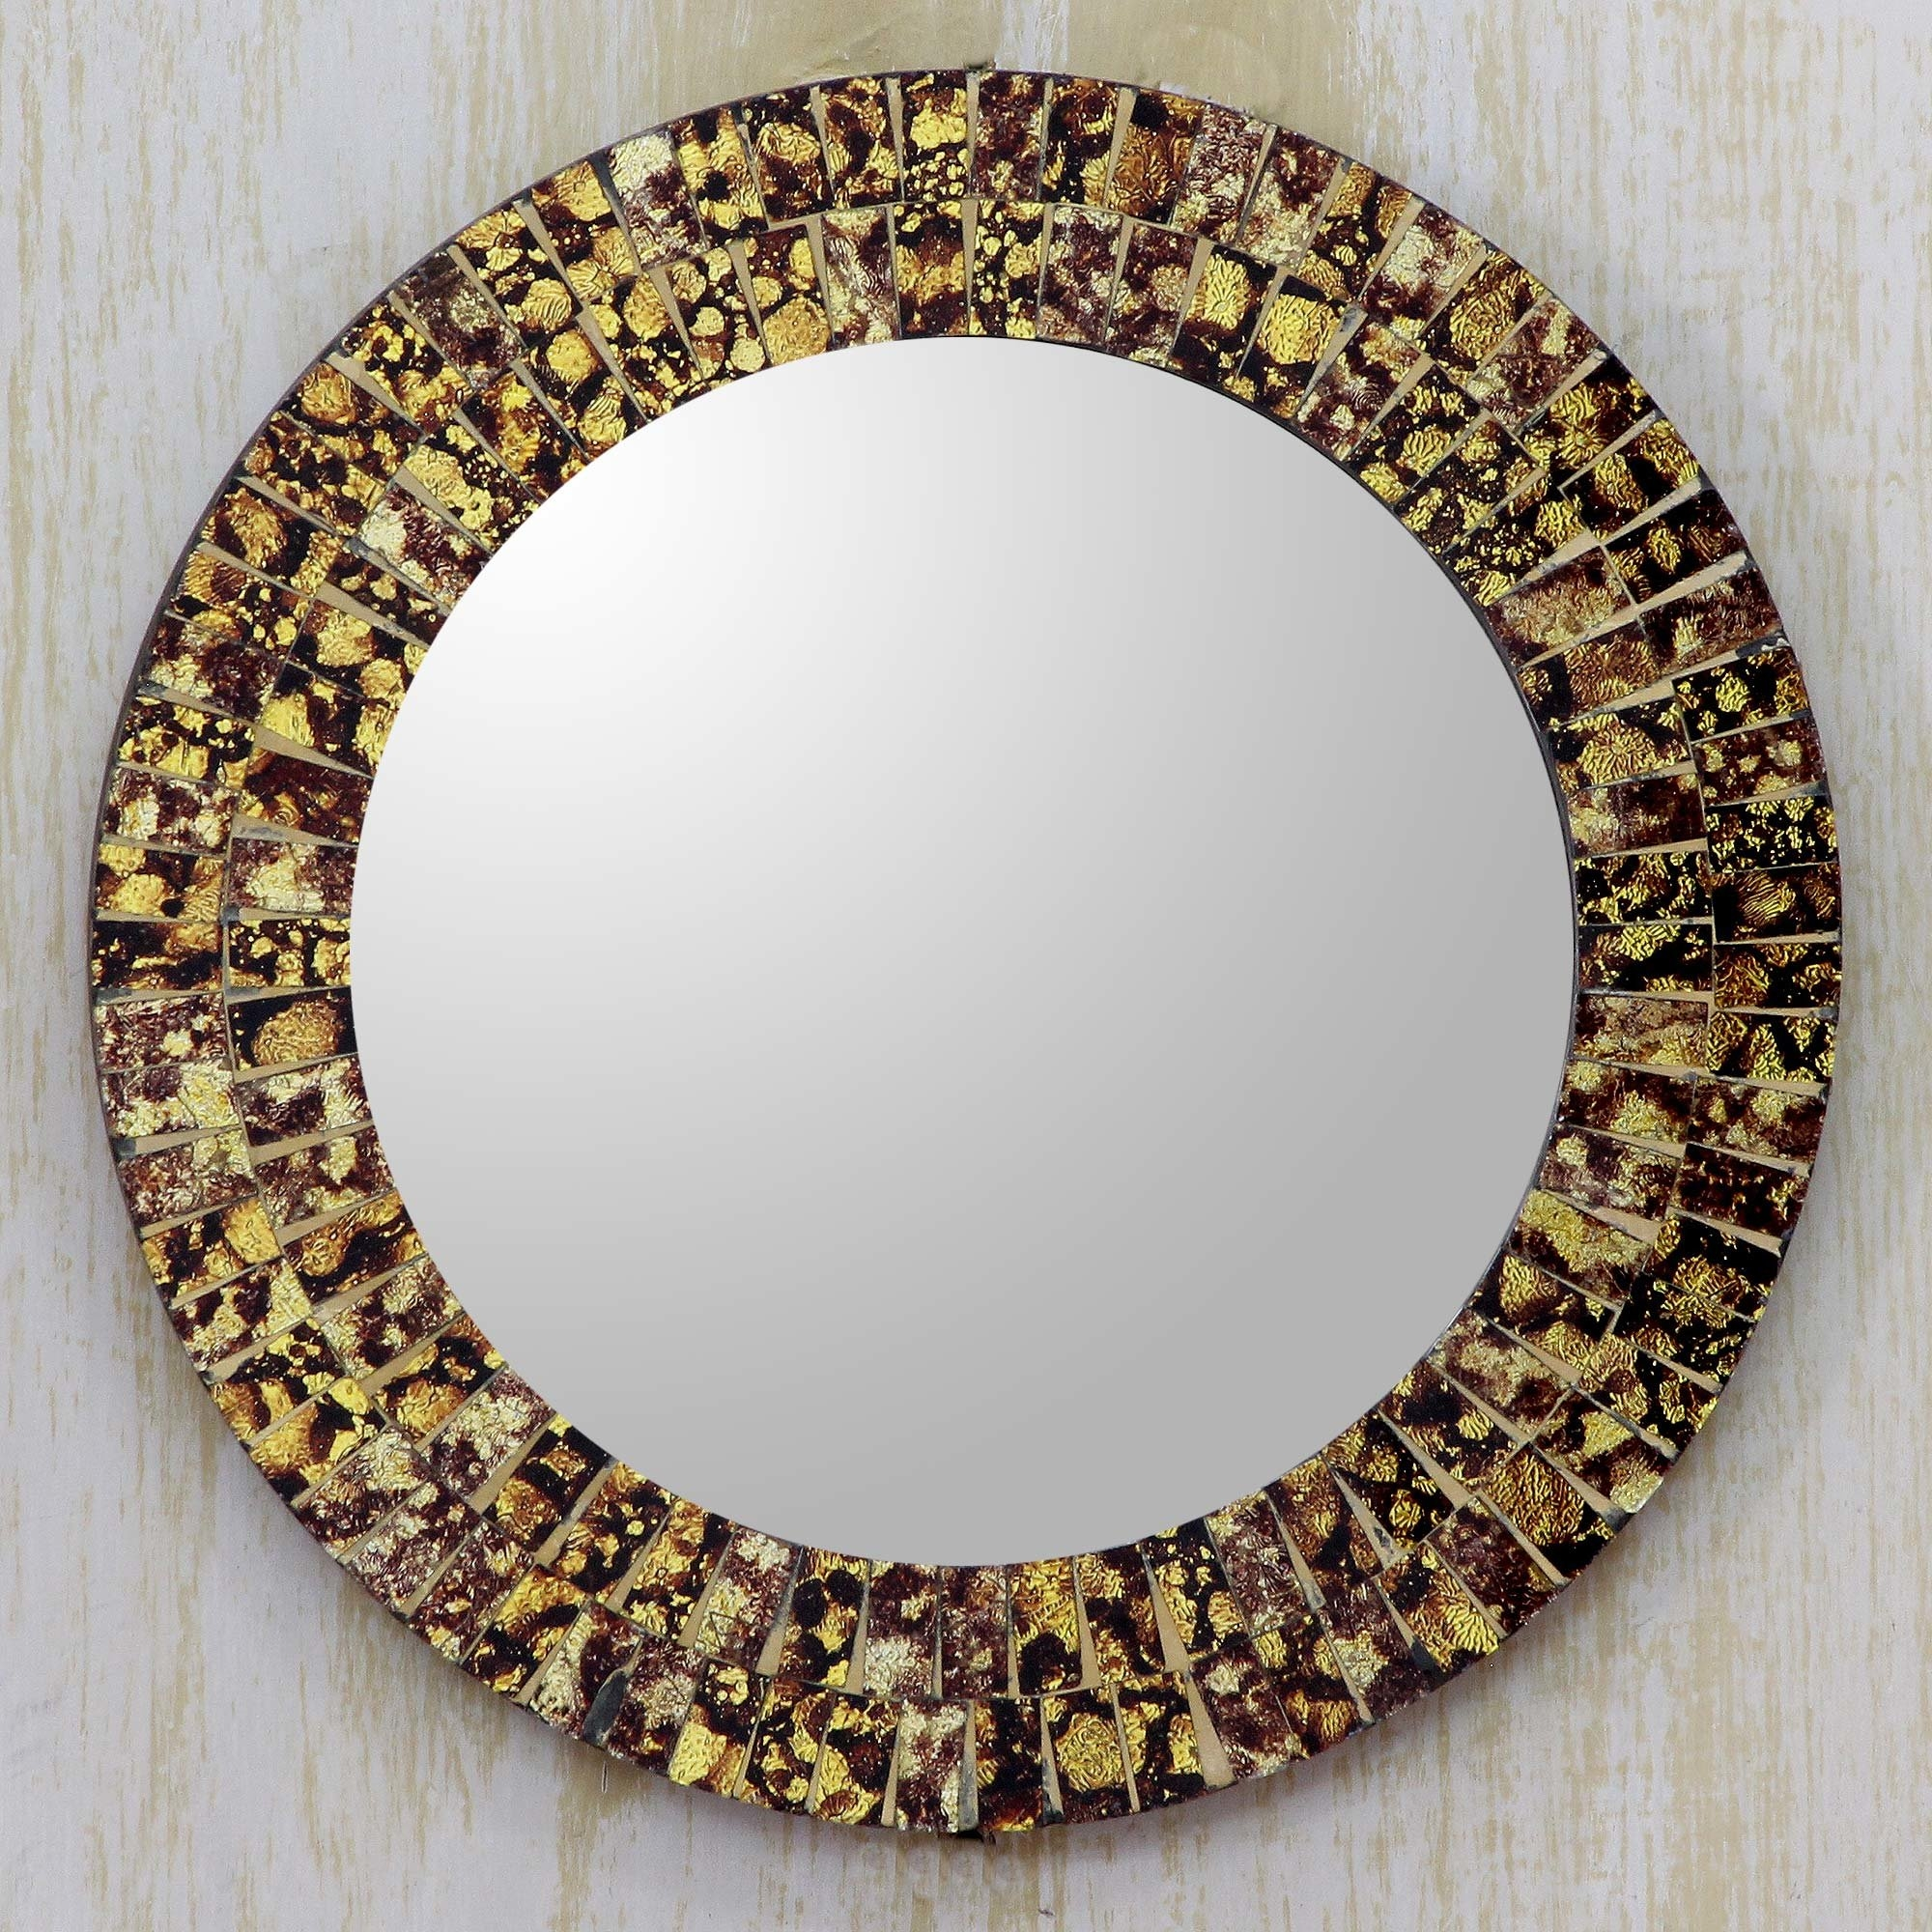 Novica Round Wall Or Table Mirror With Glass Mosaic Frame Wayfair Regarding Round Mosaic Wall Mirror (View 14 of 15)